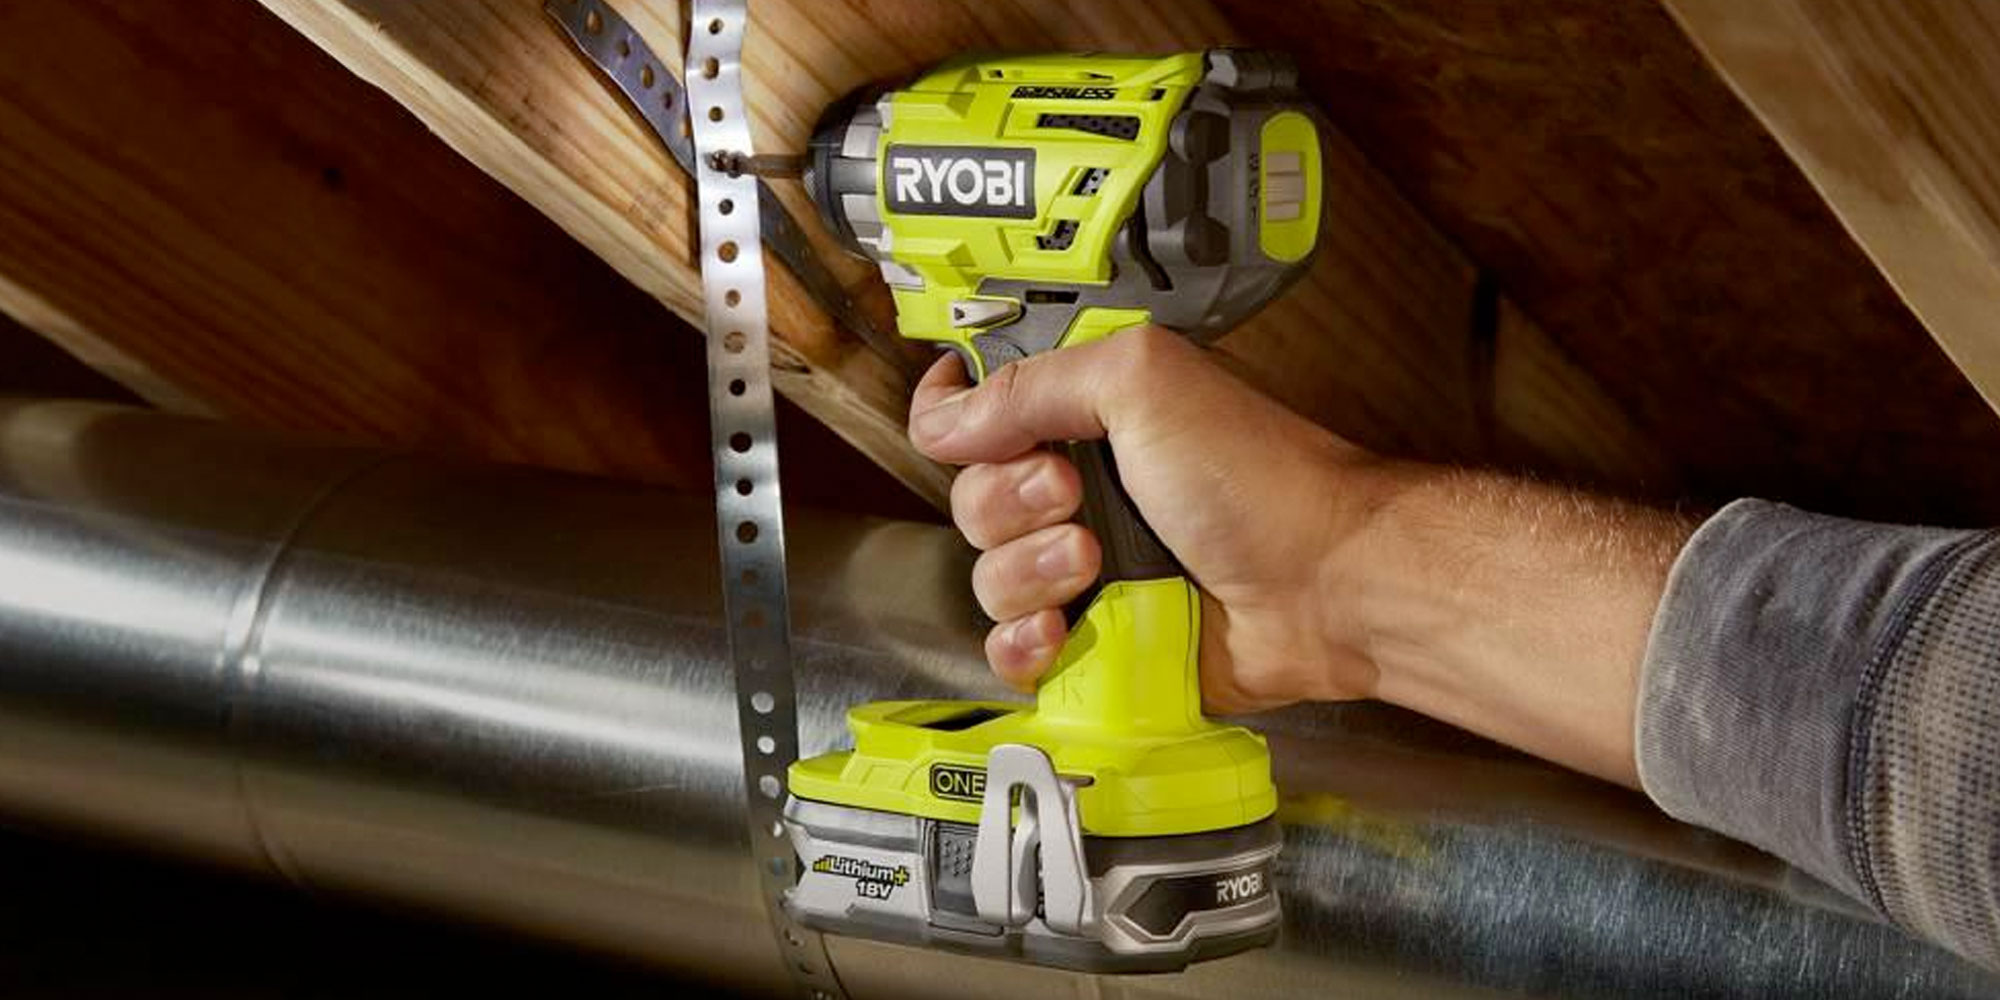 Ryobi's 18V Li-Ion tool bundle offers two impact drills, multiple saws, more for $259 ($500+ value)